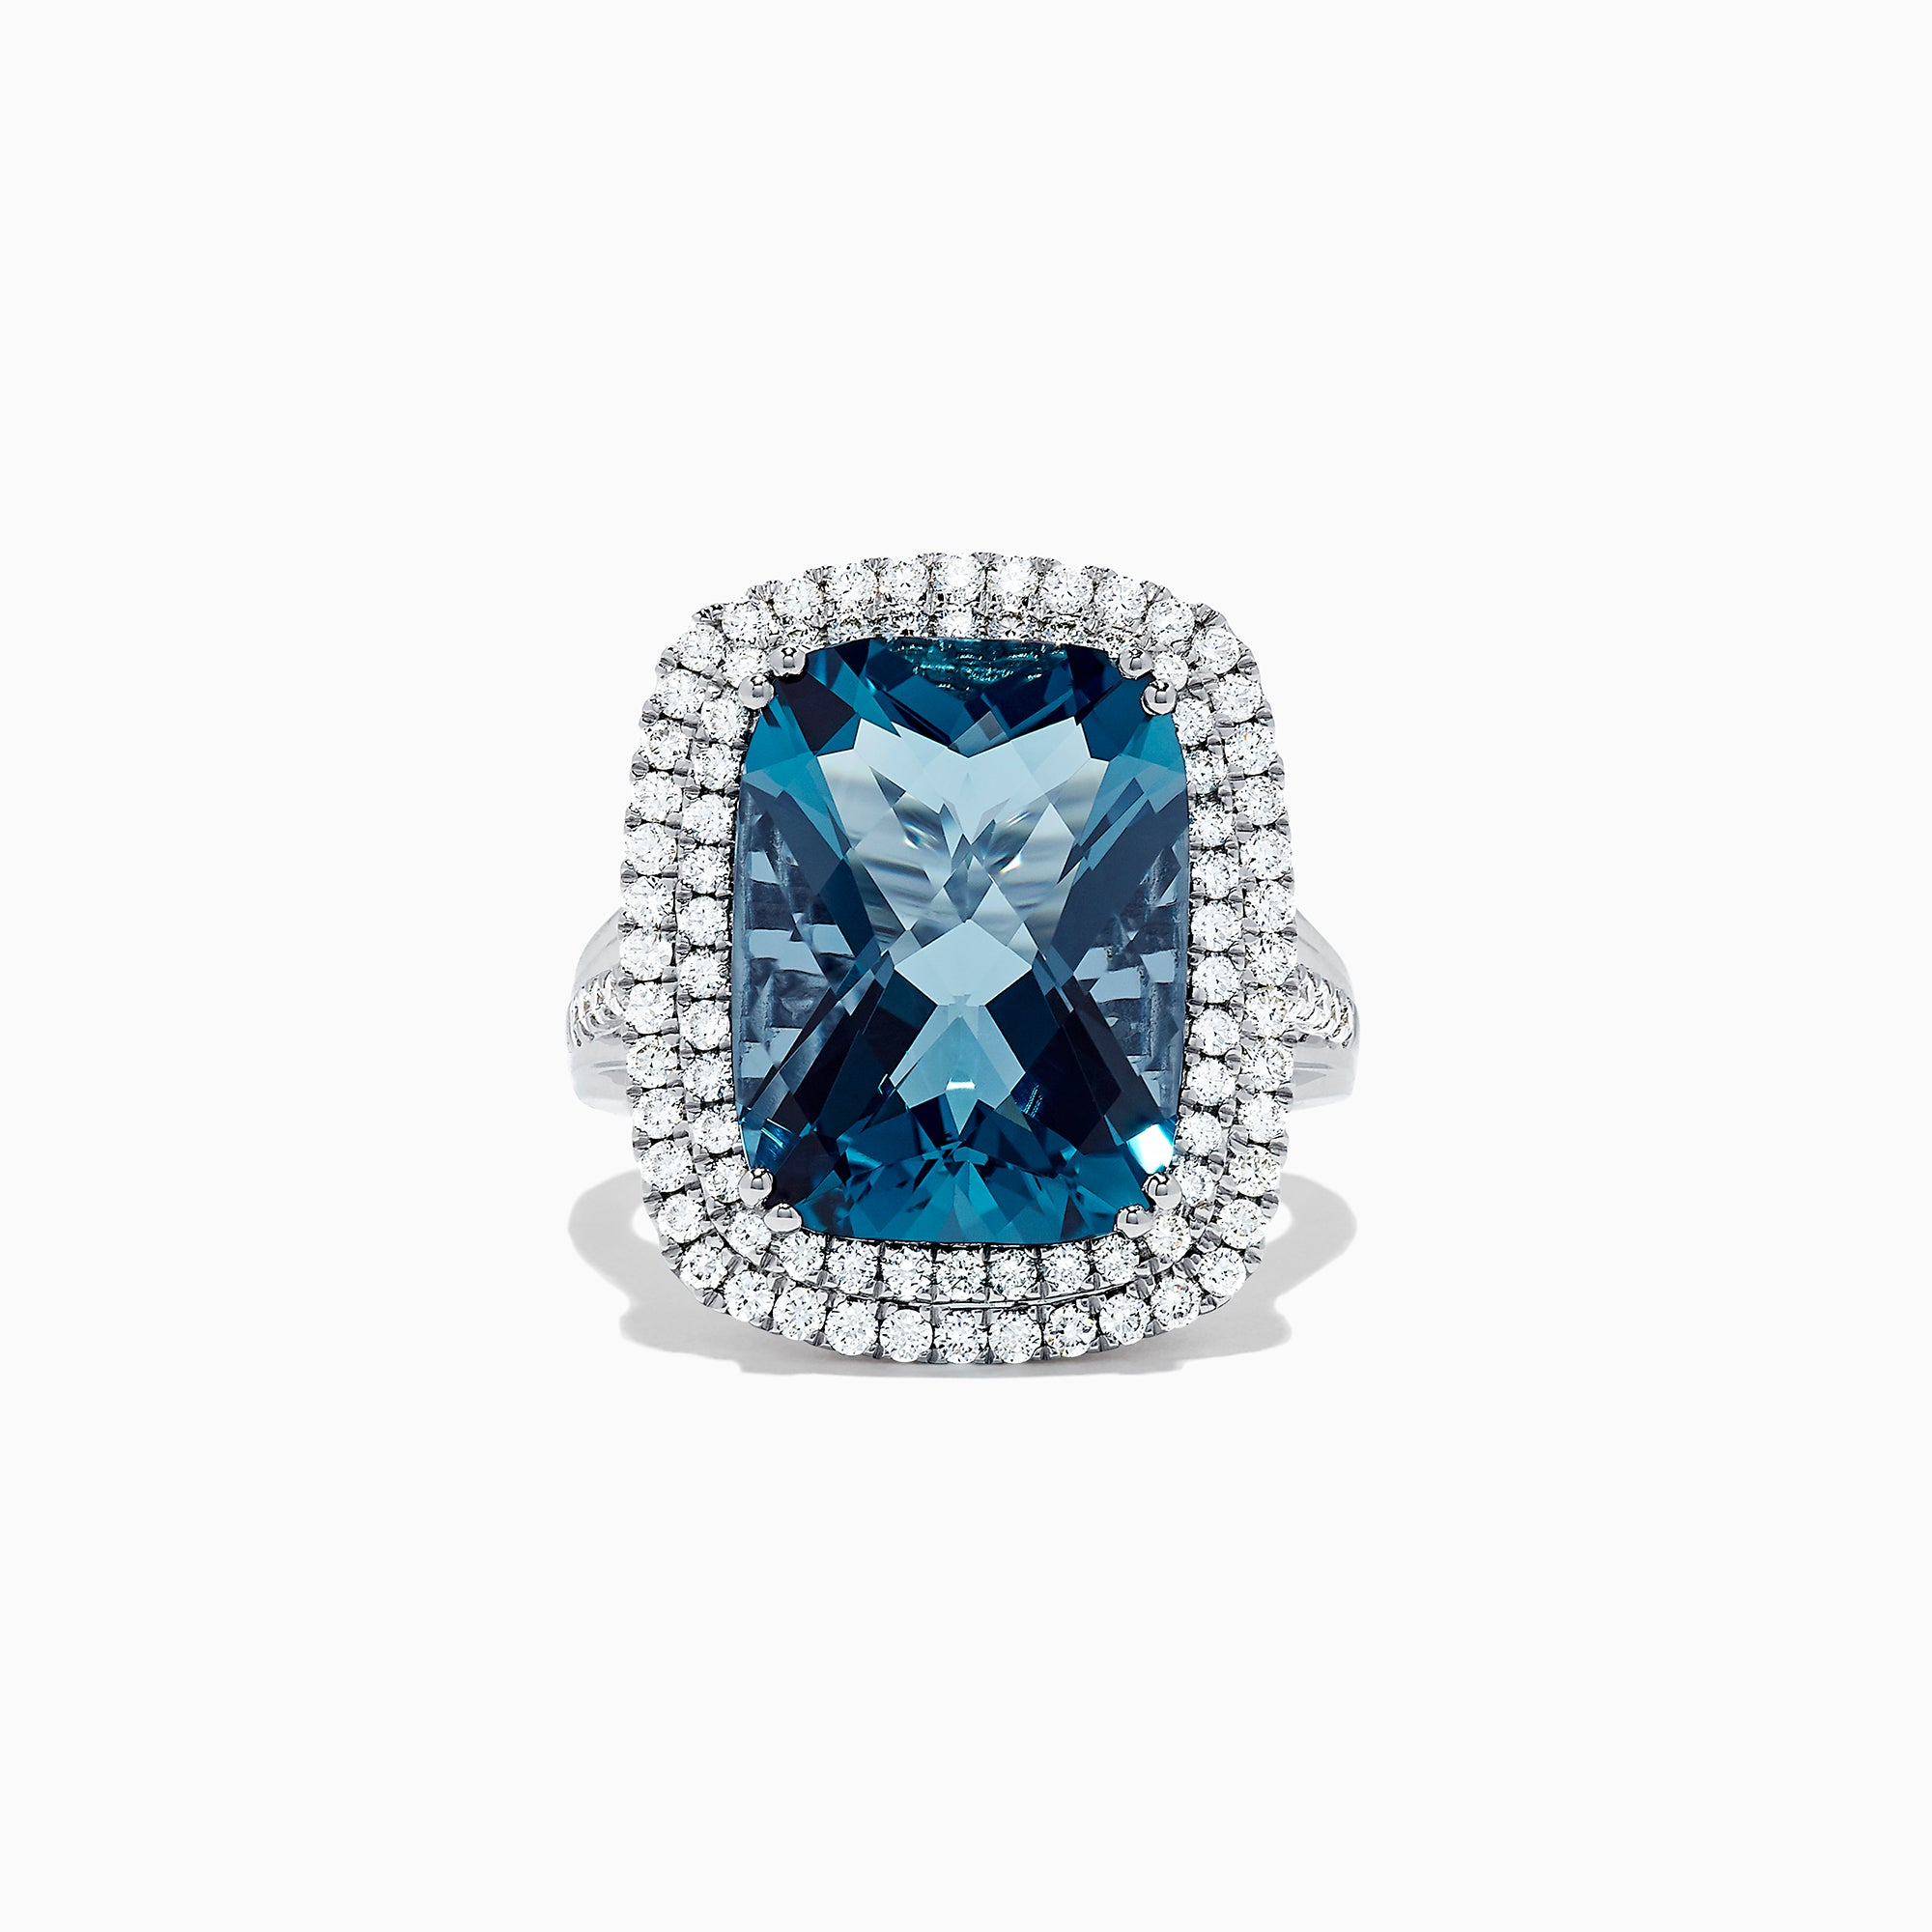 Effy Ocean Bleu 14K White Gold London Blue Topaz and Diamond Ring, 8.39 TCW